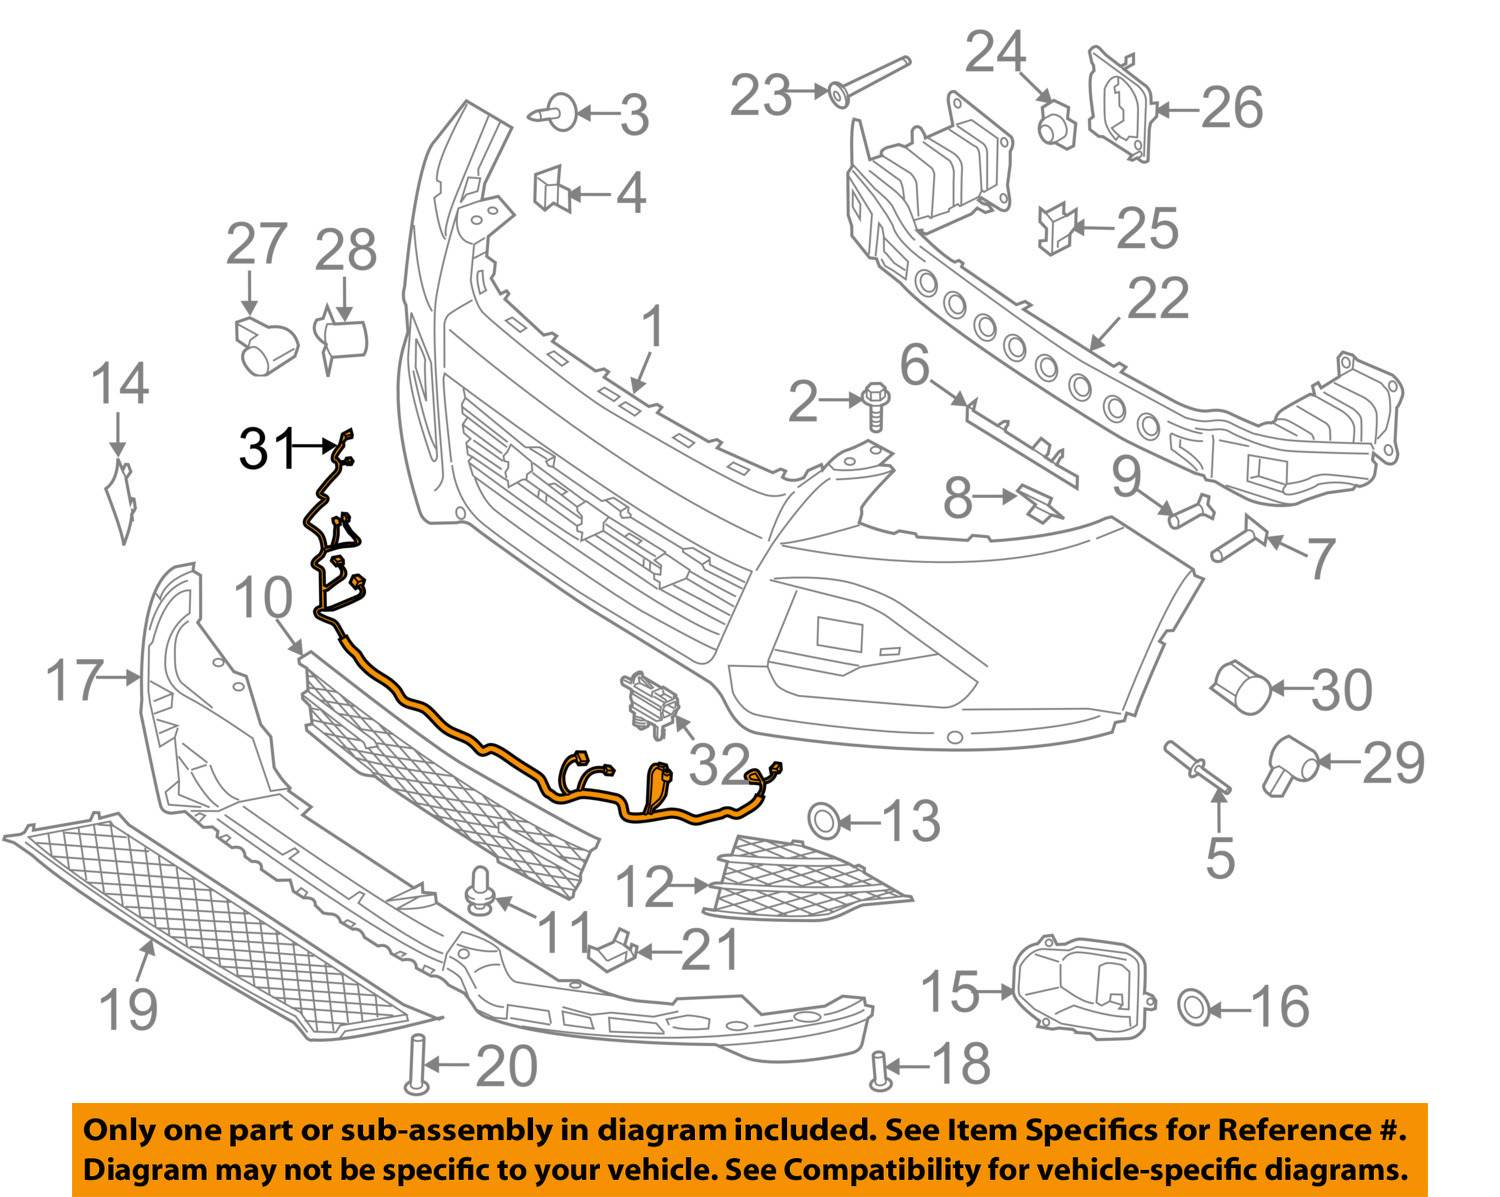 New Oem Parking Aid  U0026 Fog Light Wiring Harness 2013 Ford Escape  Dv6z